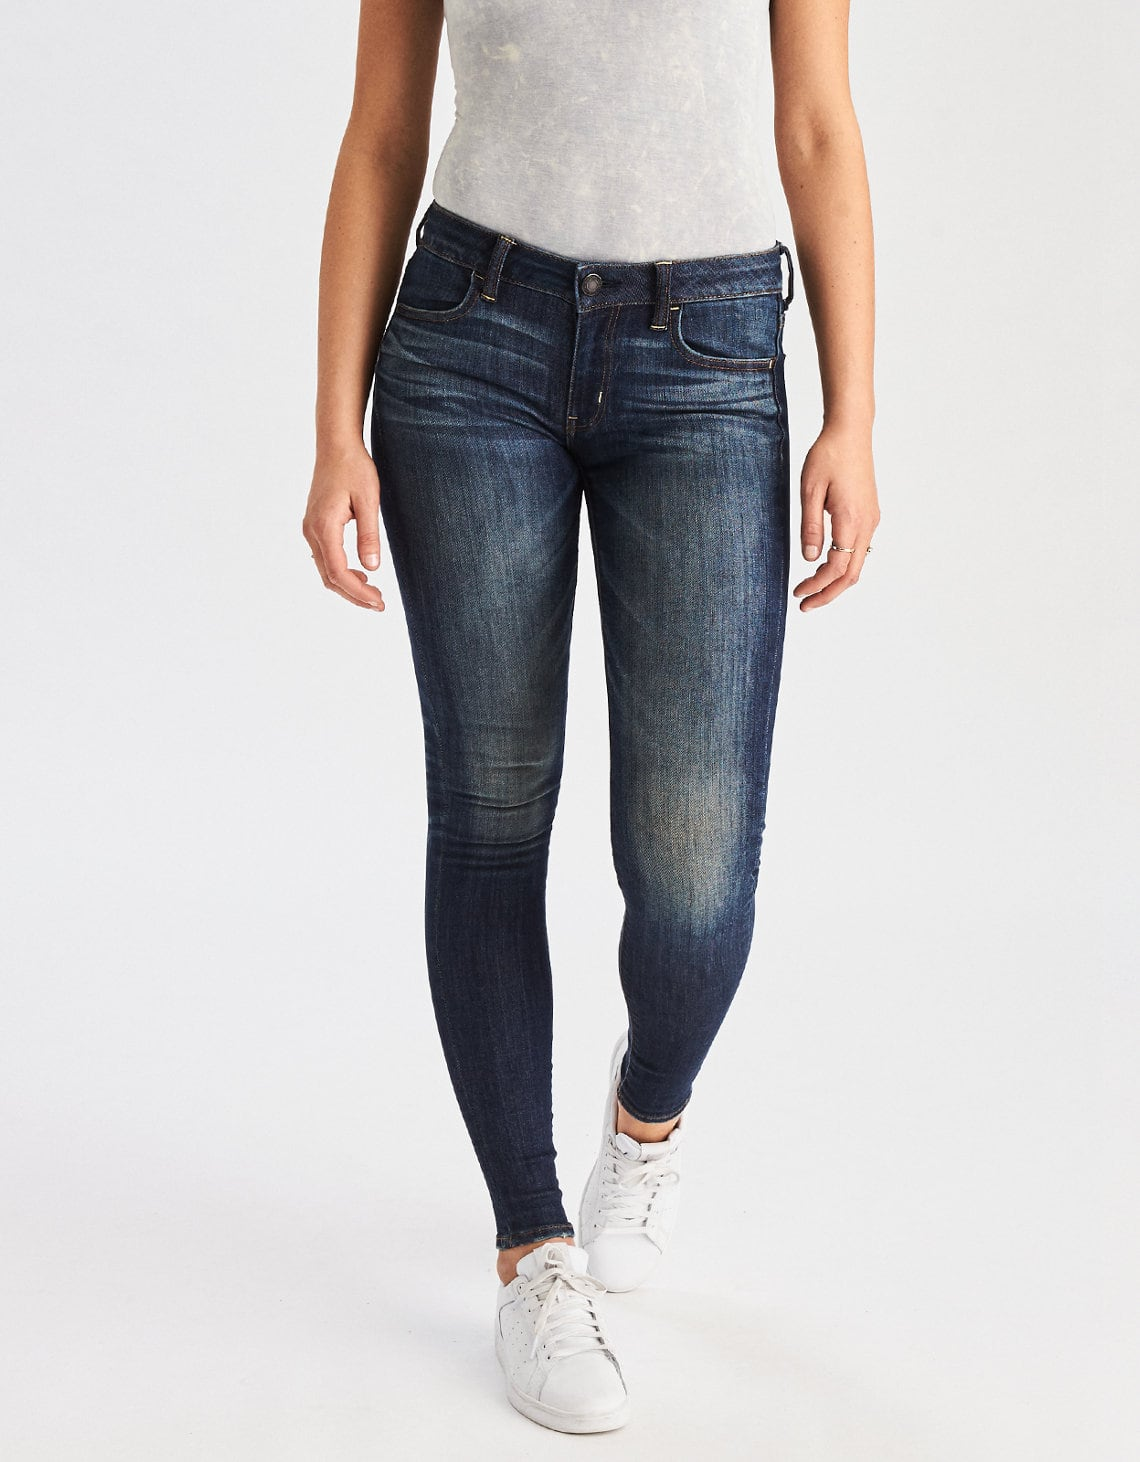 American Eagle Jeans clearance $20